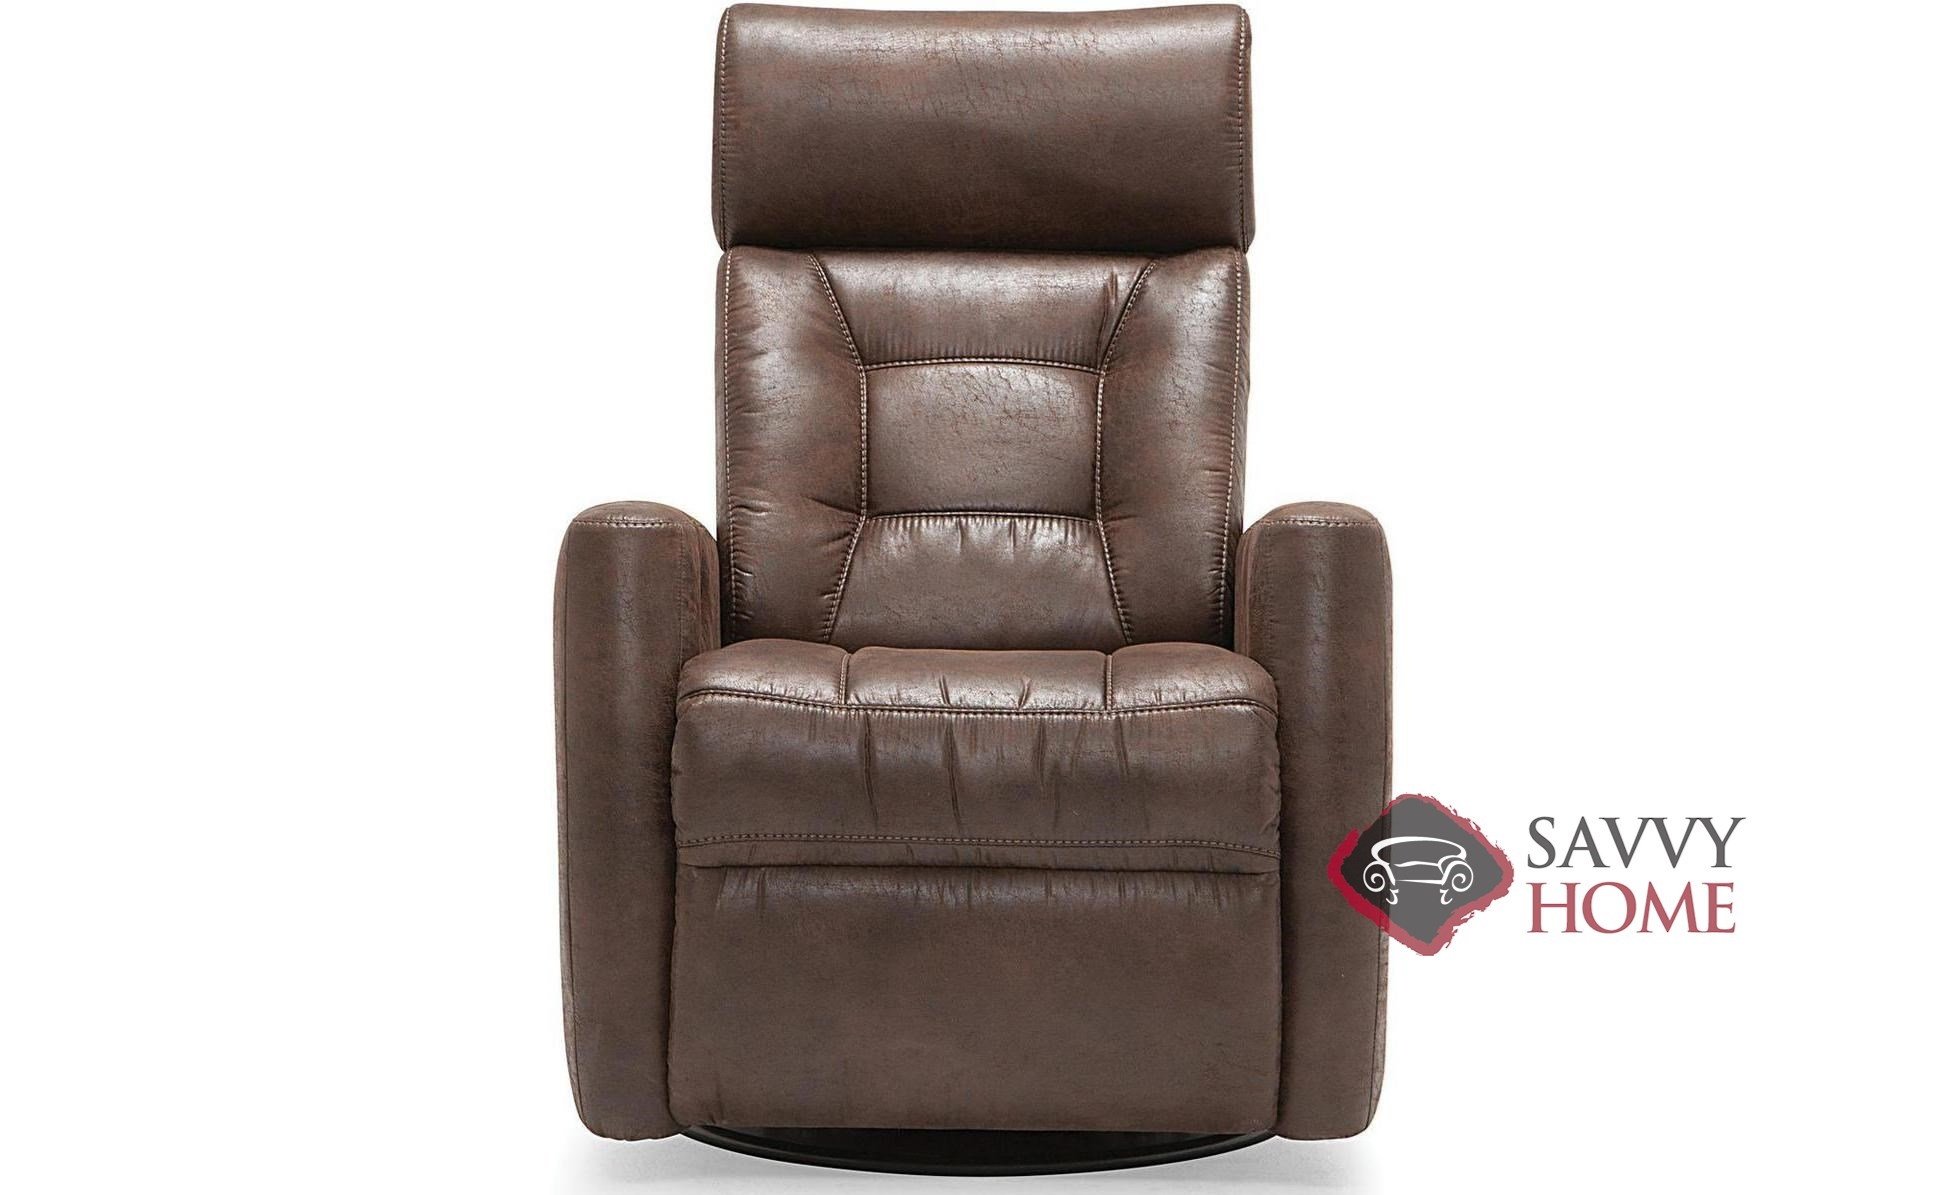 Electric Recliner Leather Chairs Baltic My Comfort Reclining Top Grain Leather Chair With Power Adjustable Headrest By Palliser